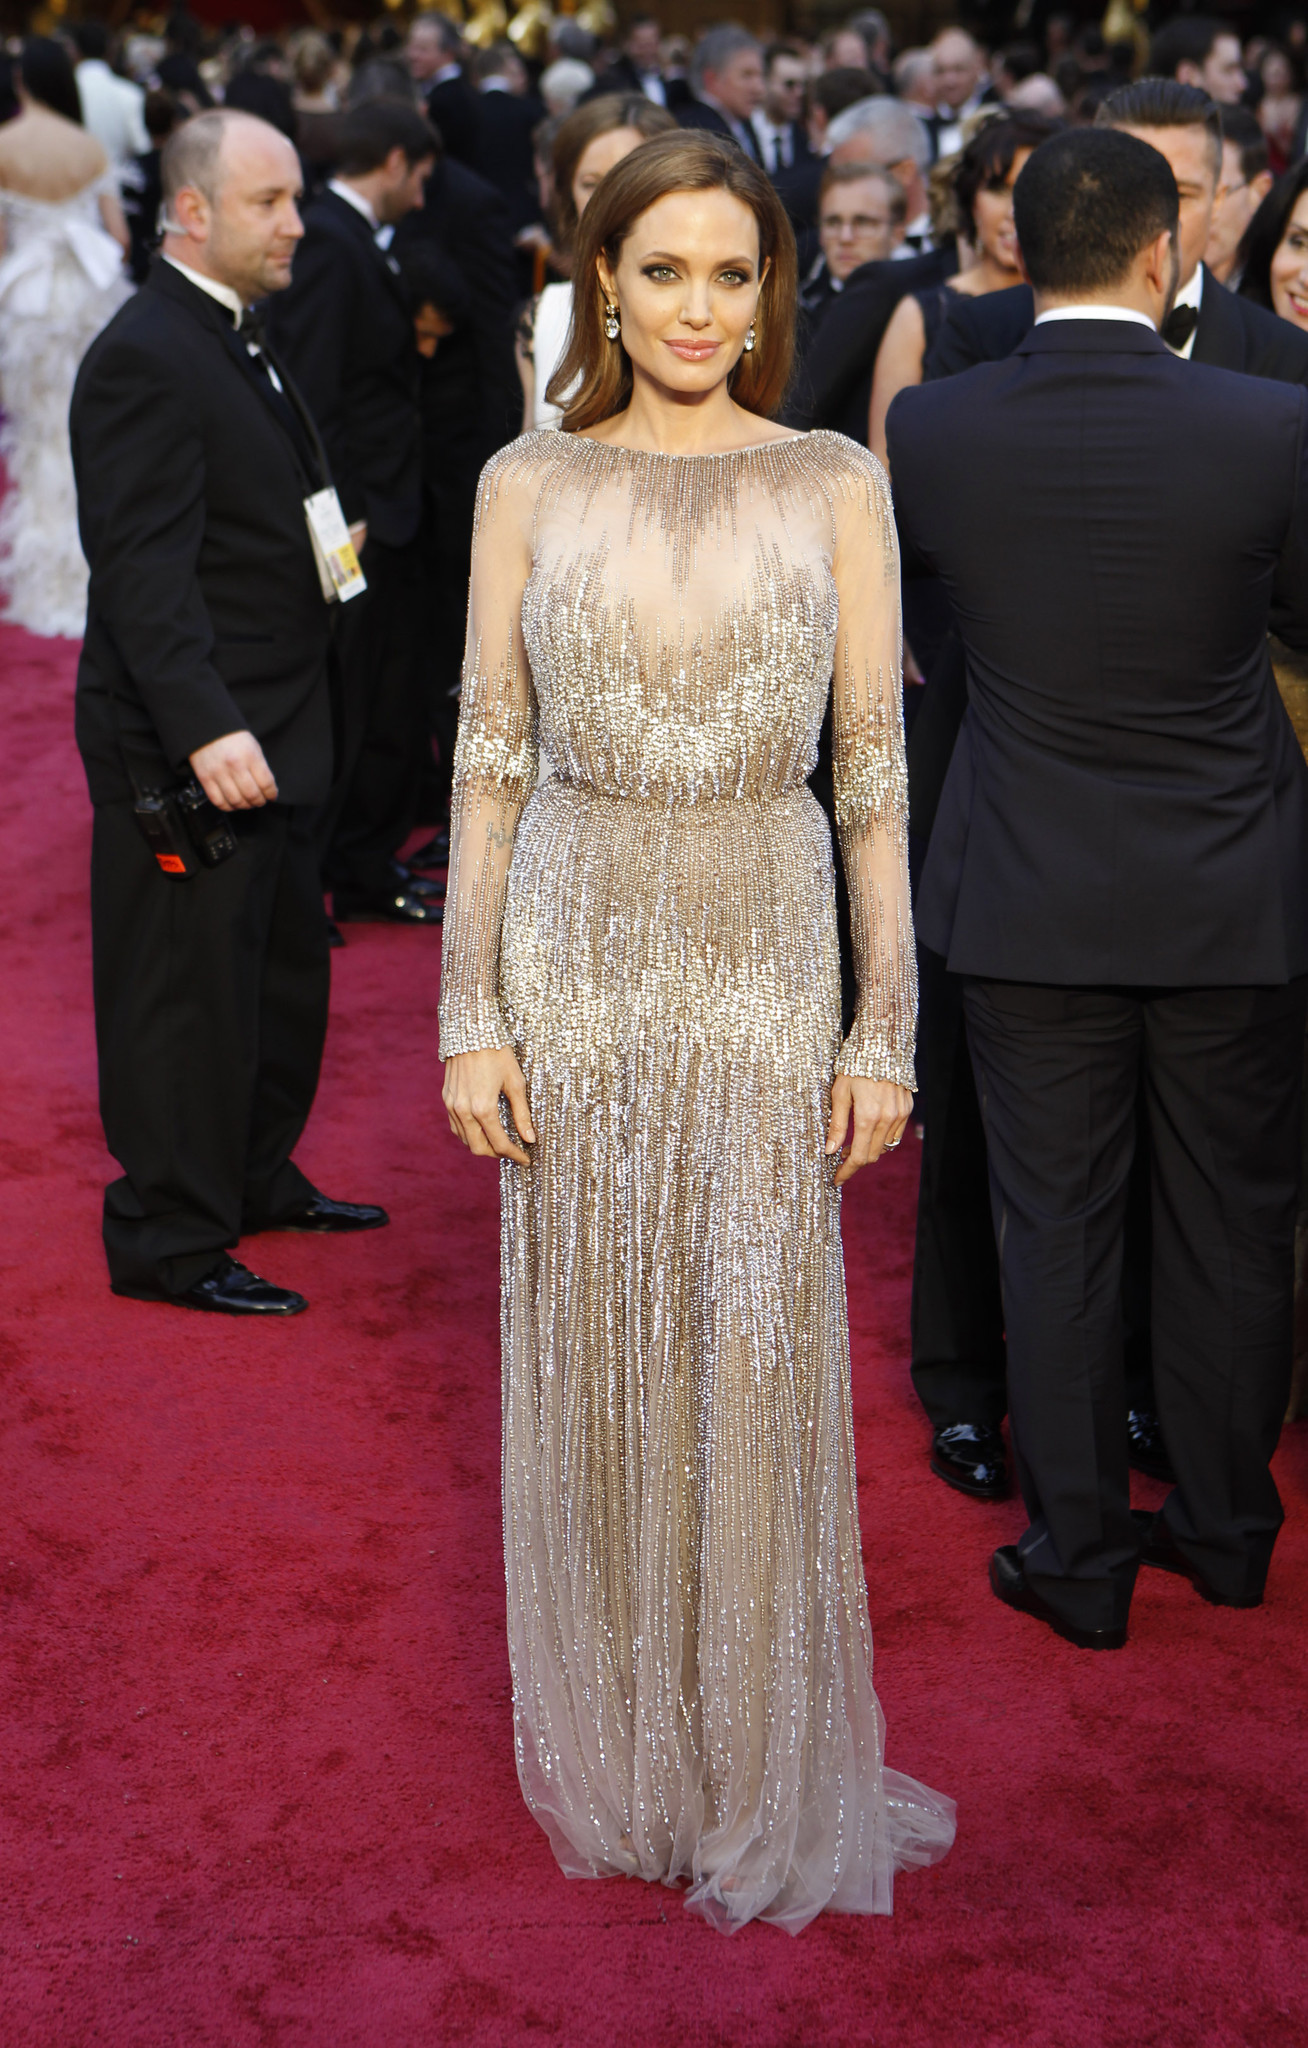 Oscars 2014 red carpet: Best and worst dressed - LA Times